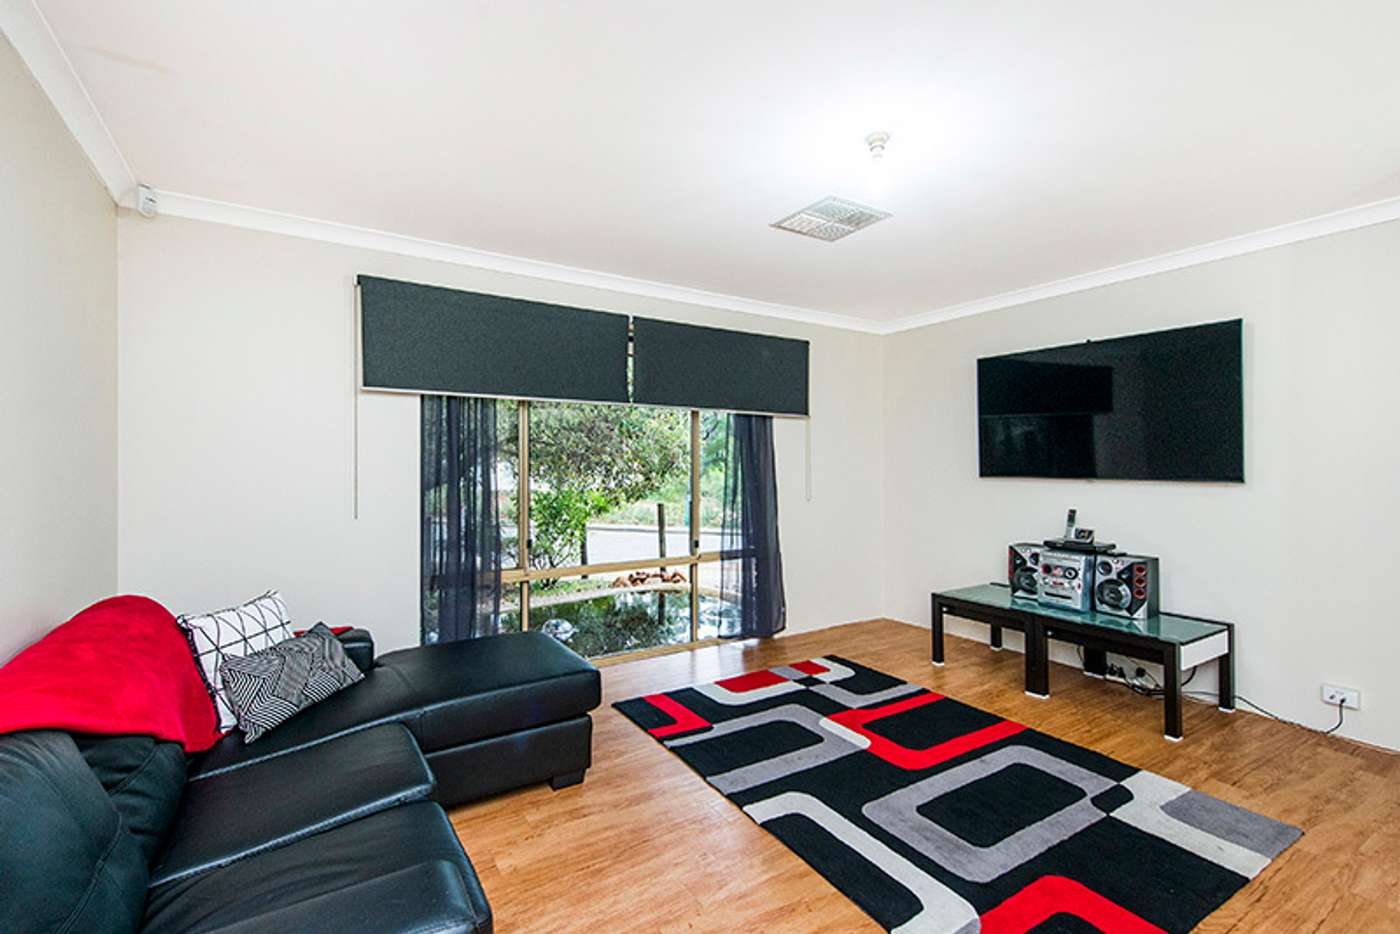 Sixth view of Homely house listing, 5 Cousens Street, Jarrahdale WA 6124